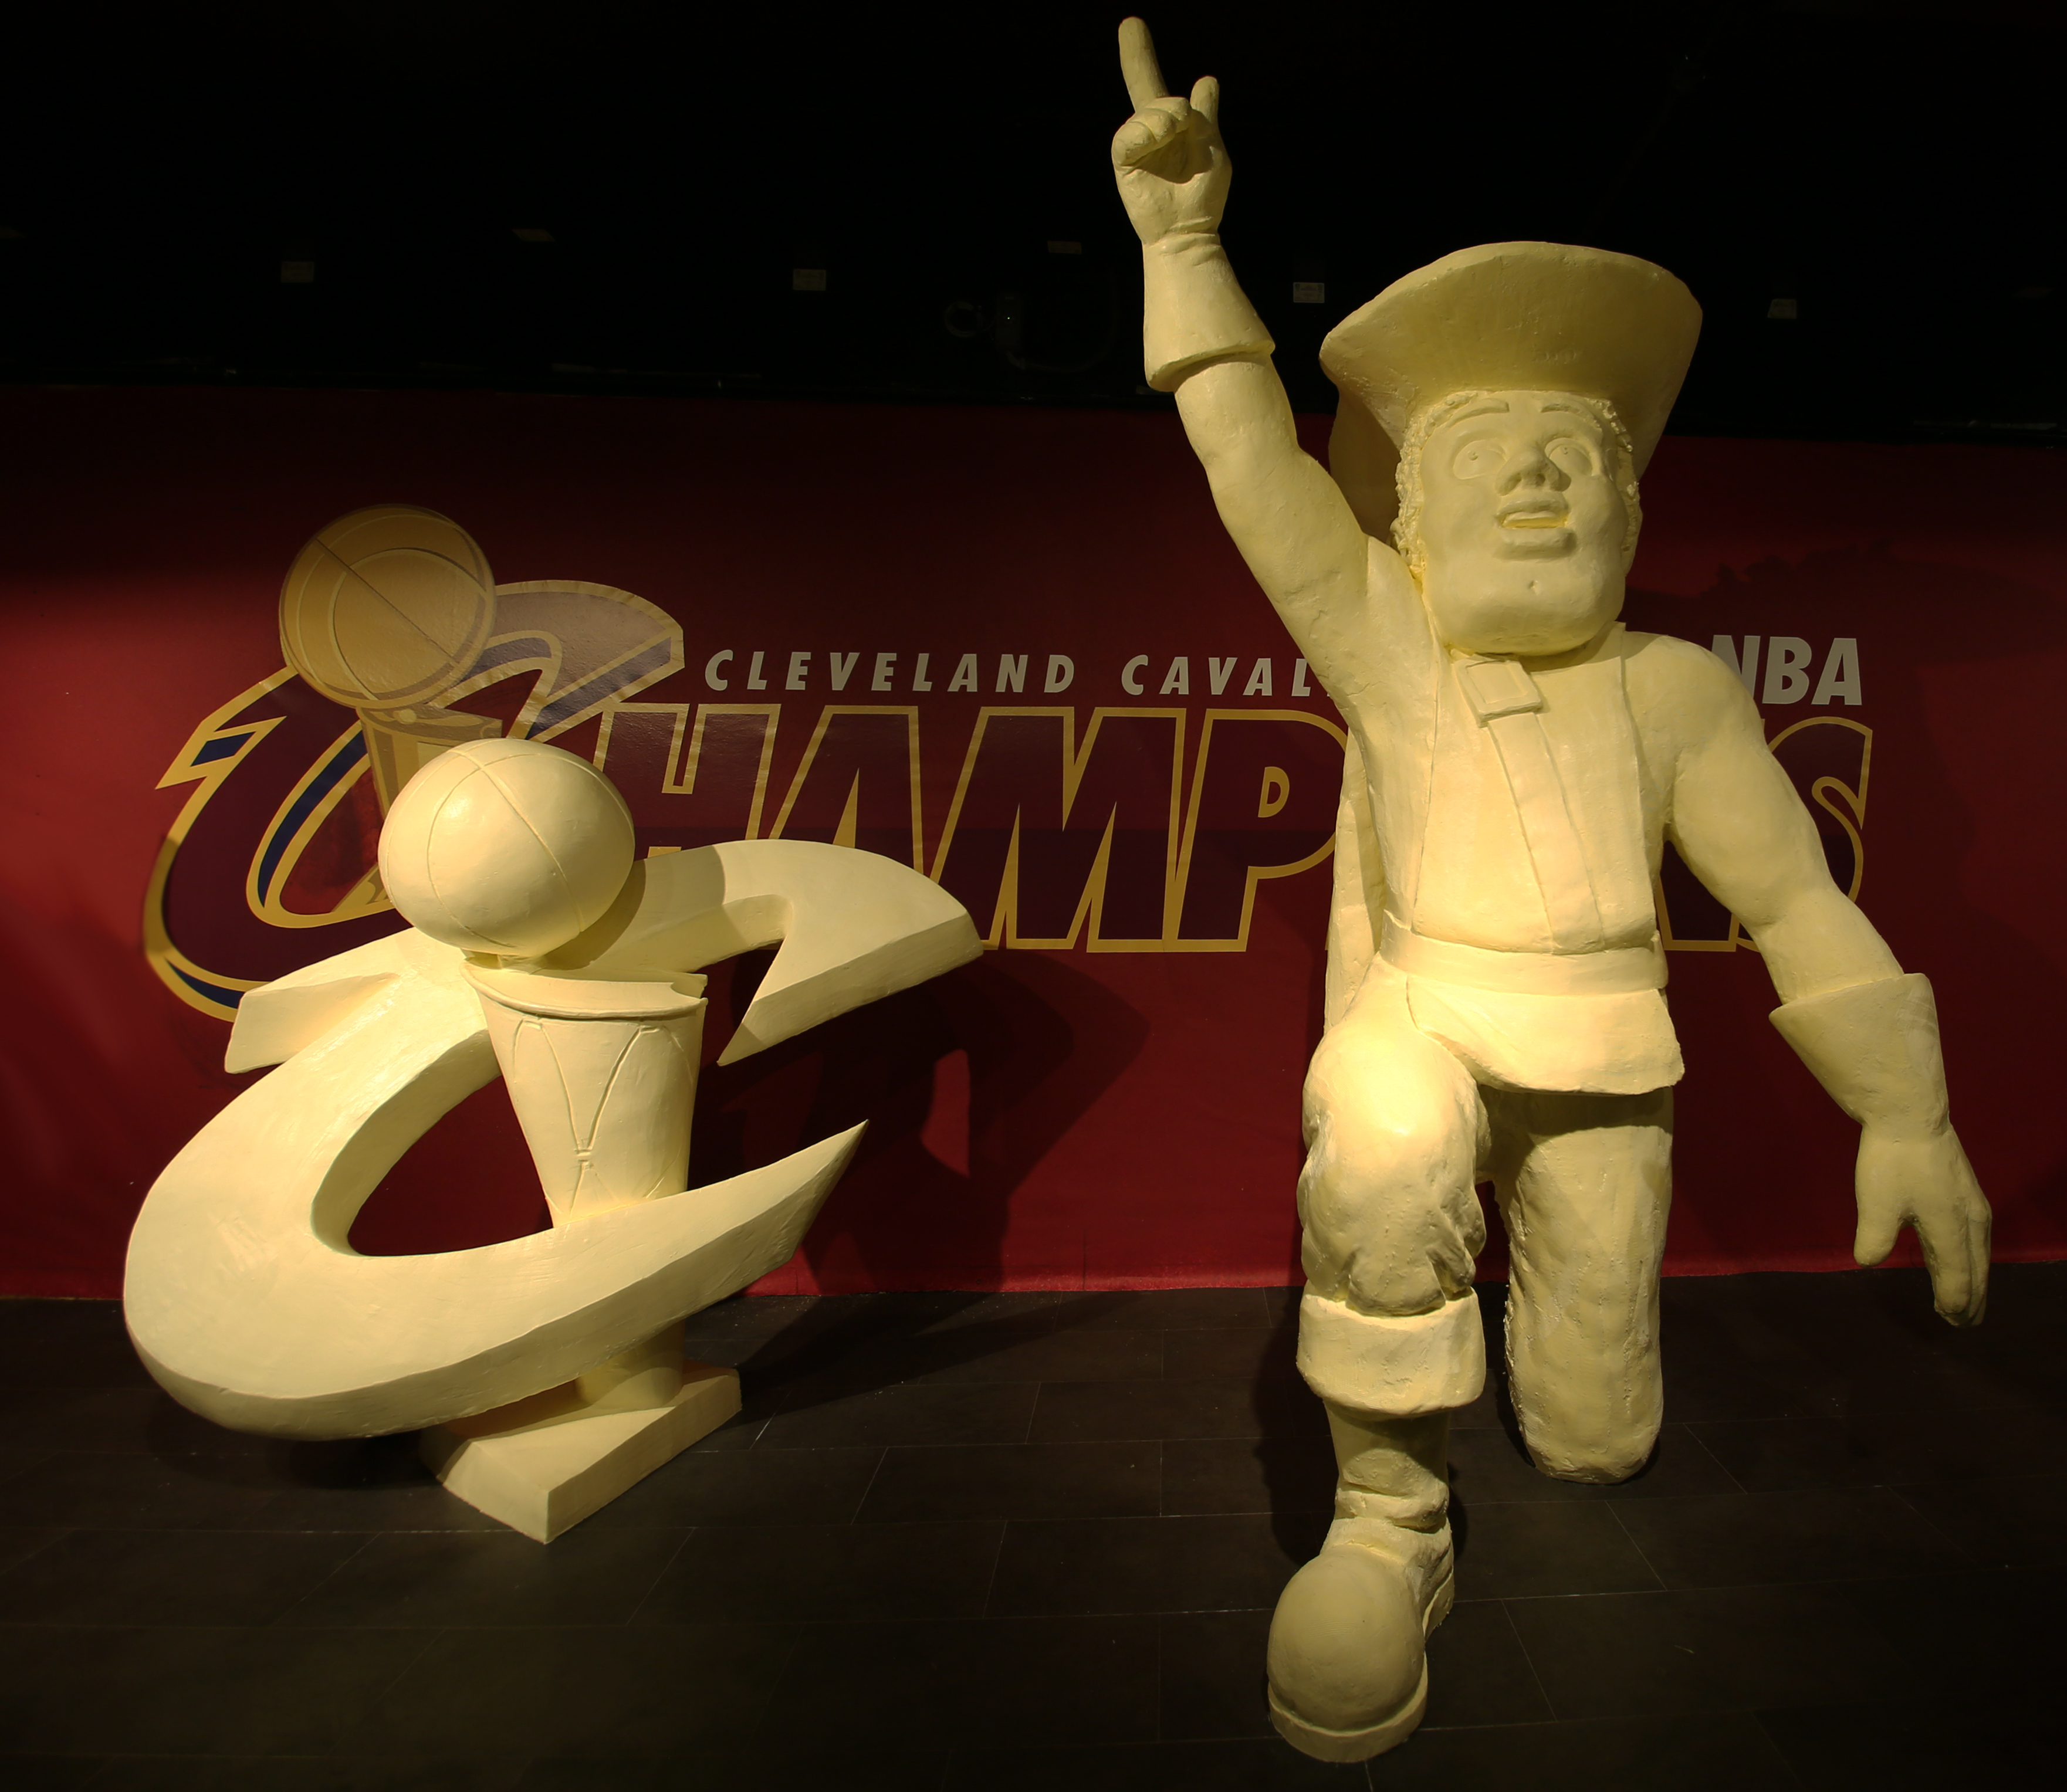 Each year, the American Dairy Association Mideast chooses a butter display theme that honors Ohio`s history and culture. This year, they celebrate the historic victory of the Cleveland Cavaliers.